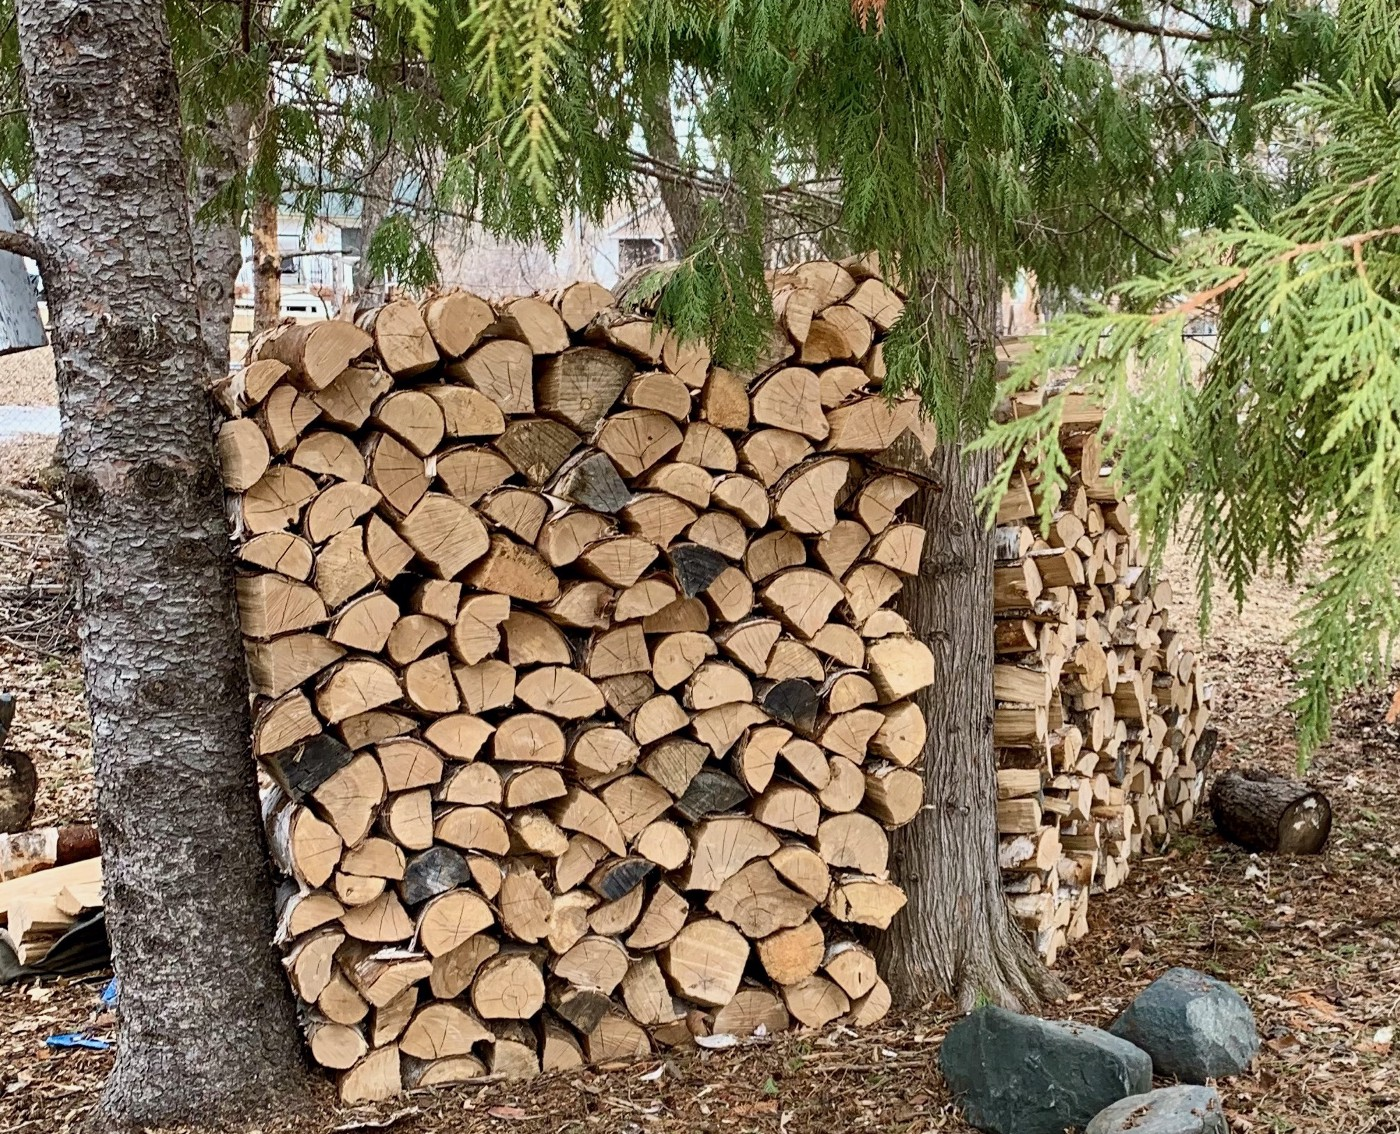 A stack of birch firewood in between two large trees in a back yard scene